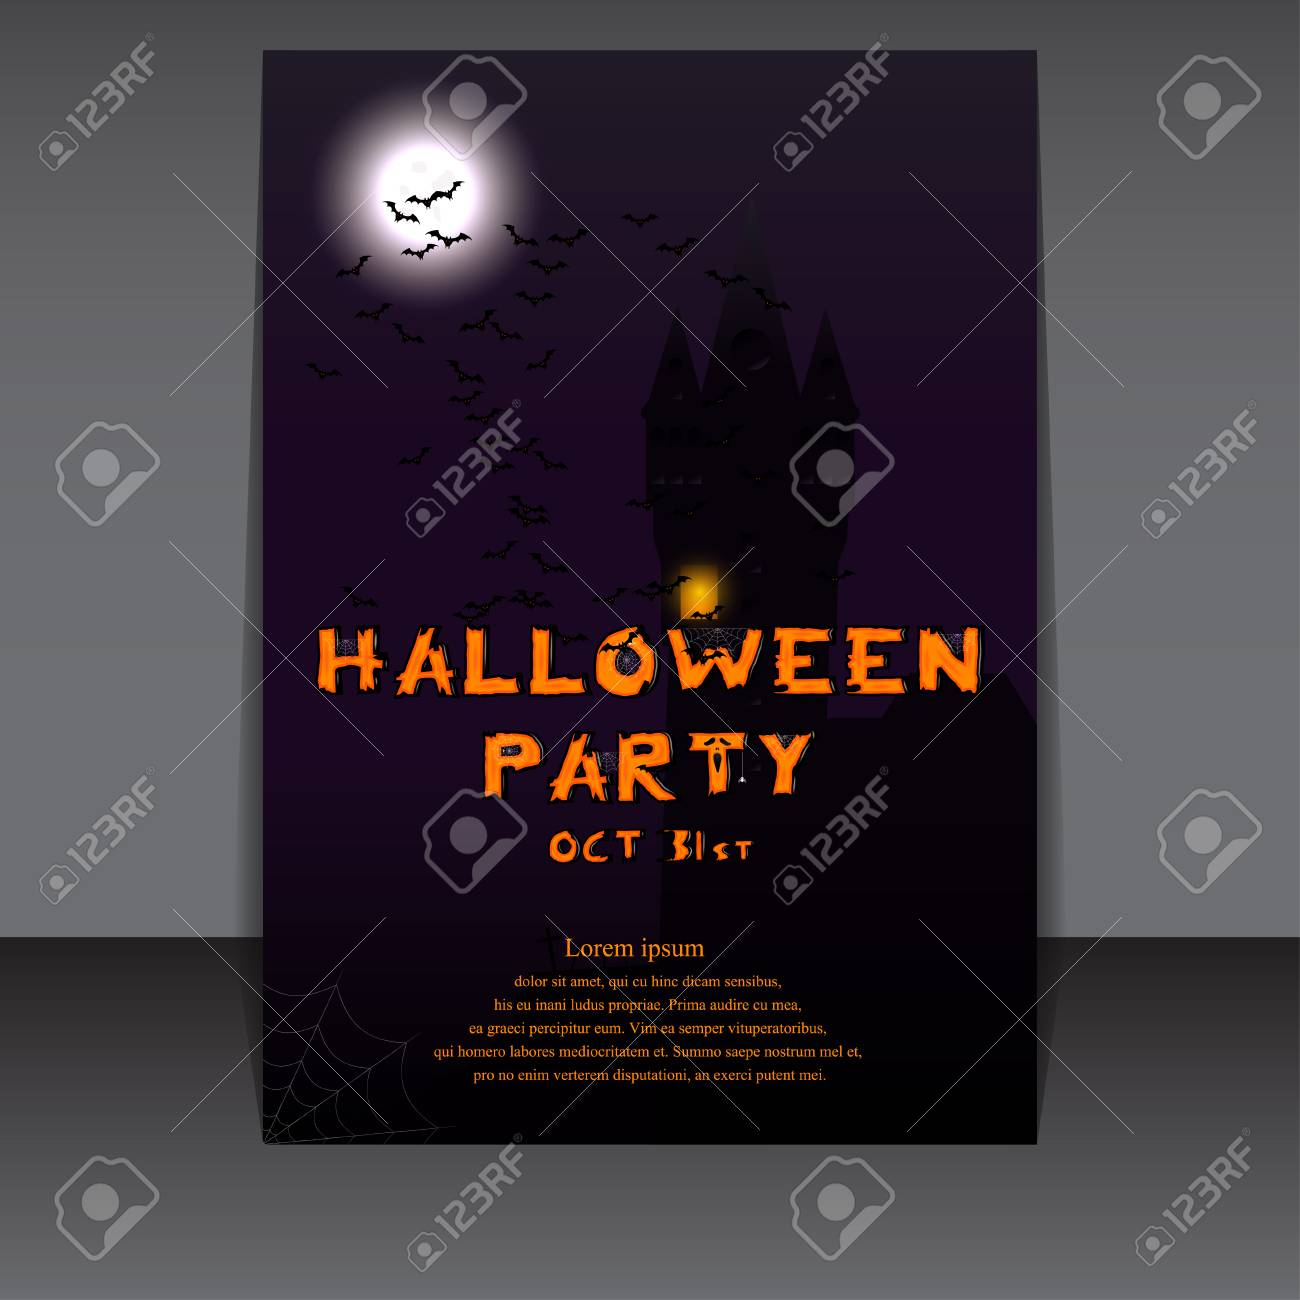 Halloween Flyer Design With Castle Silhouette On Full Moon Vector Illustration Template For